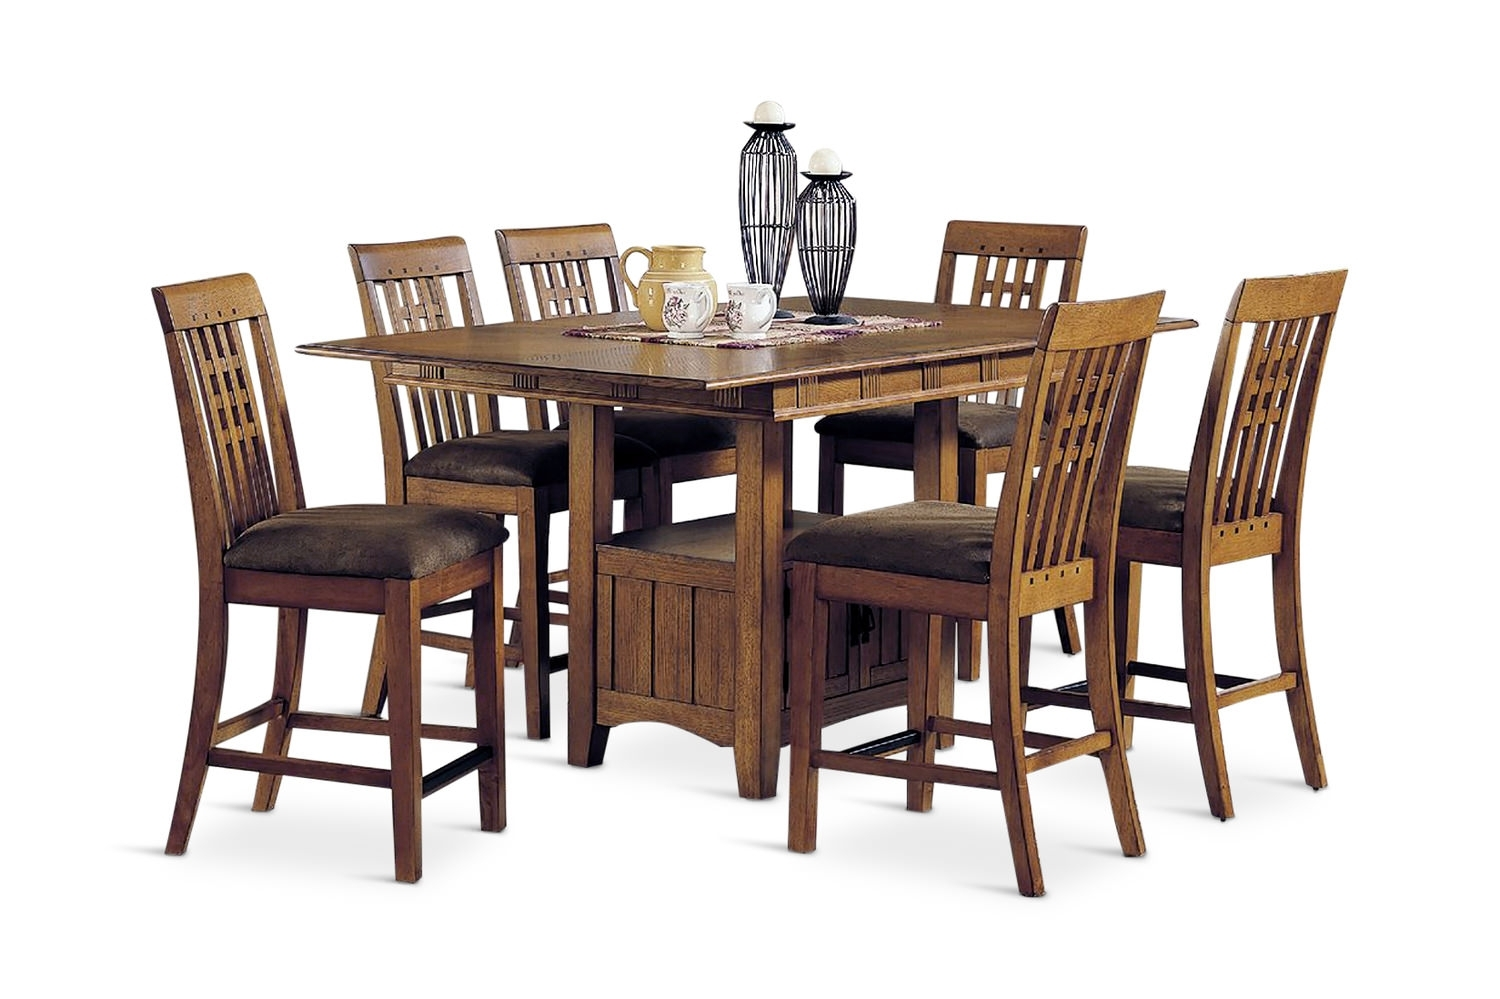 Dining Sets – Kitchen & Dining Room Sets – Hom Furniture For Most Up To Date Chapleau Ii 9 Piece Extension Dining Table Sets (Image 13 of 20)